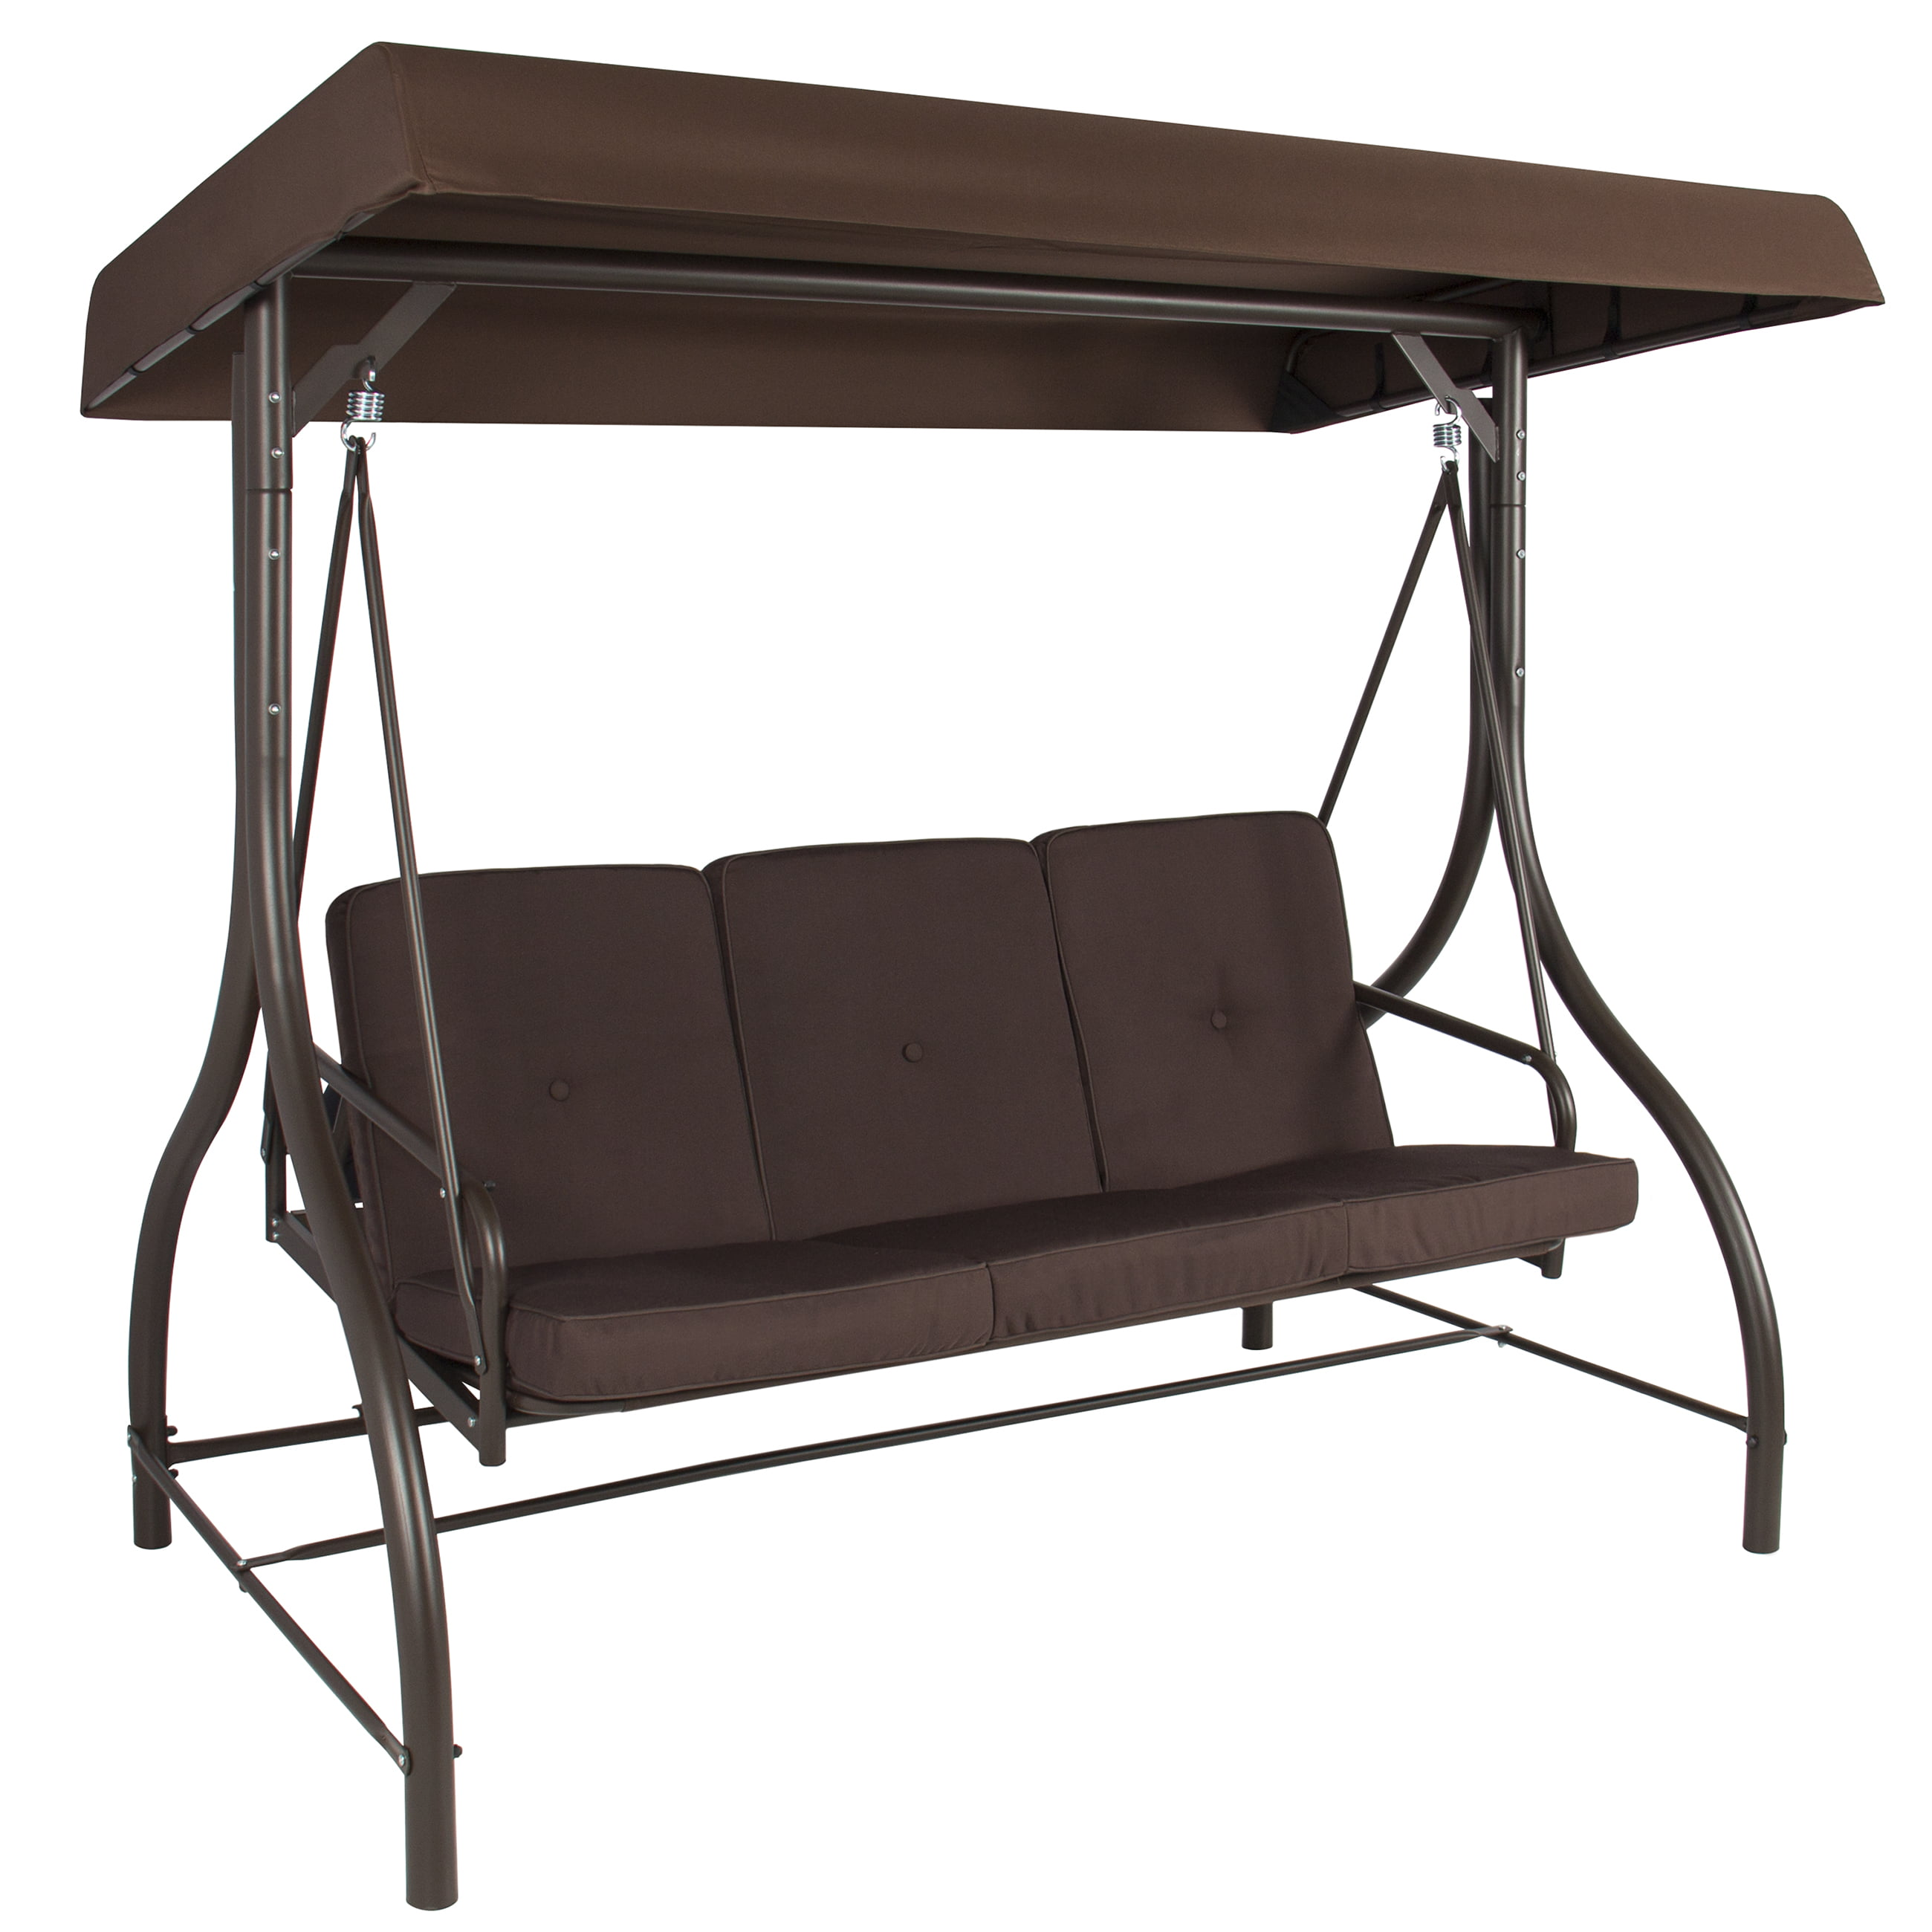 Converting Outdoor Swing Canopy Hammock Seats 3 Patio Deck Furniture - Walmart.com  sc 1 st  Walmart & Converting Outdoor Swing Canopy Hammock Seats 3 Patio Deck ...